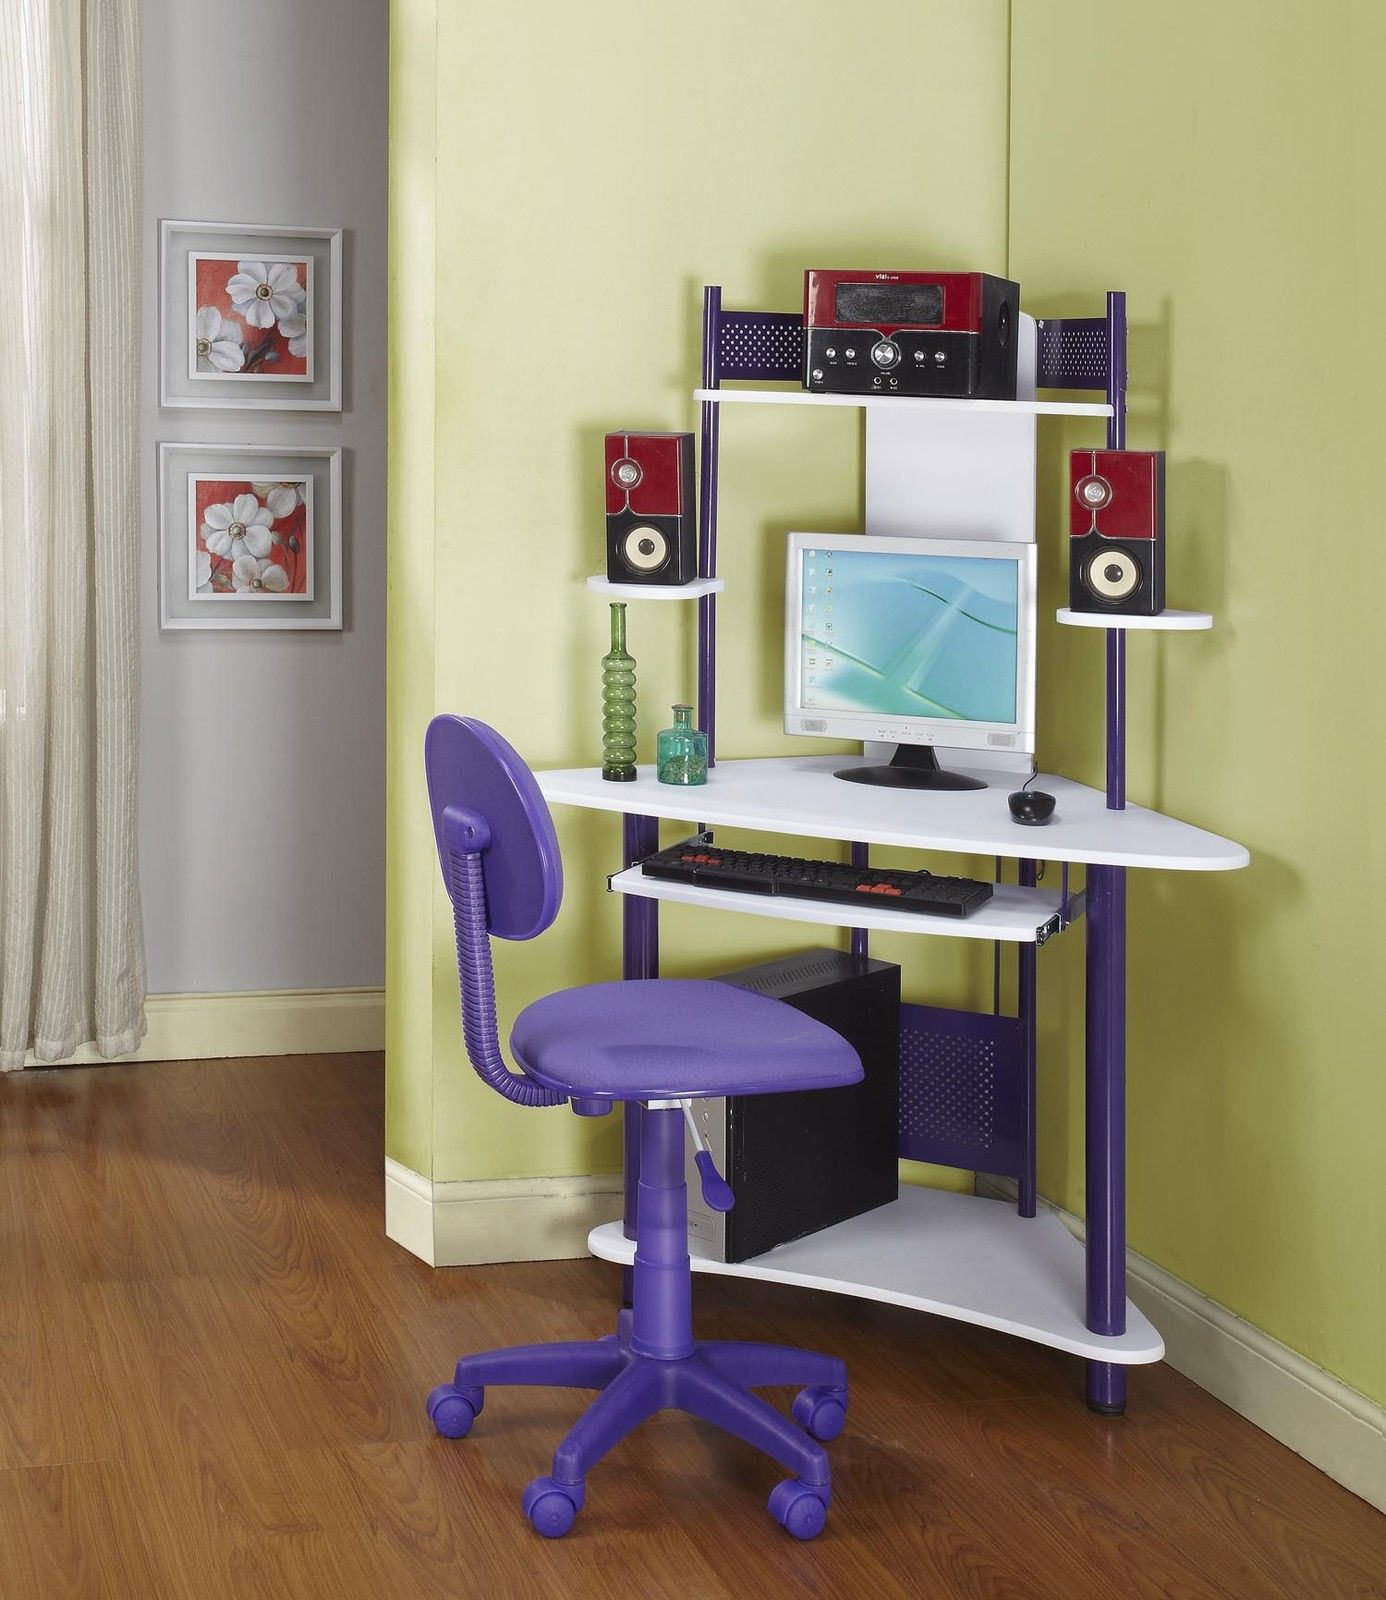 Small corner desk ikea be a favorite private corner for workspace homesfeed - Desk for small spaces ikea ...